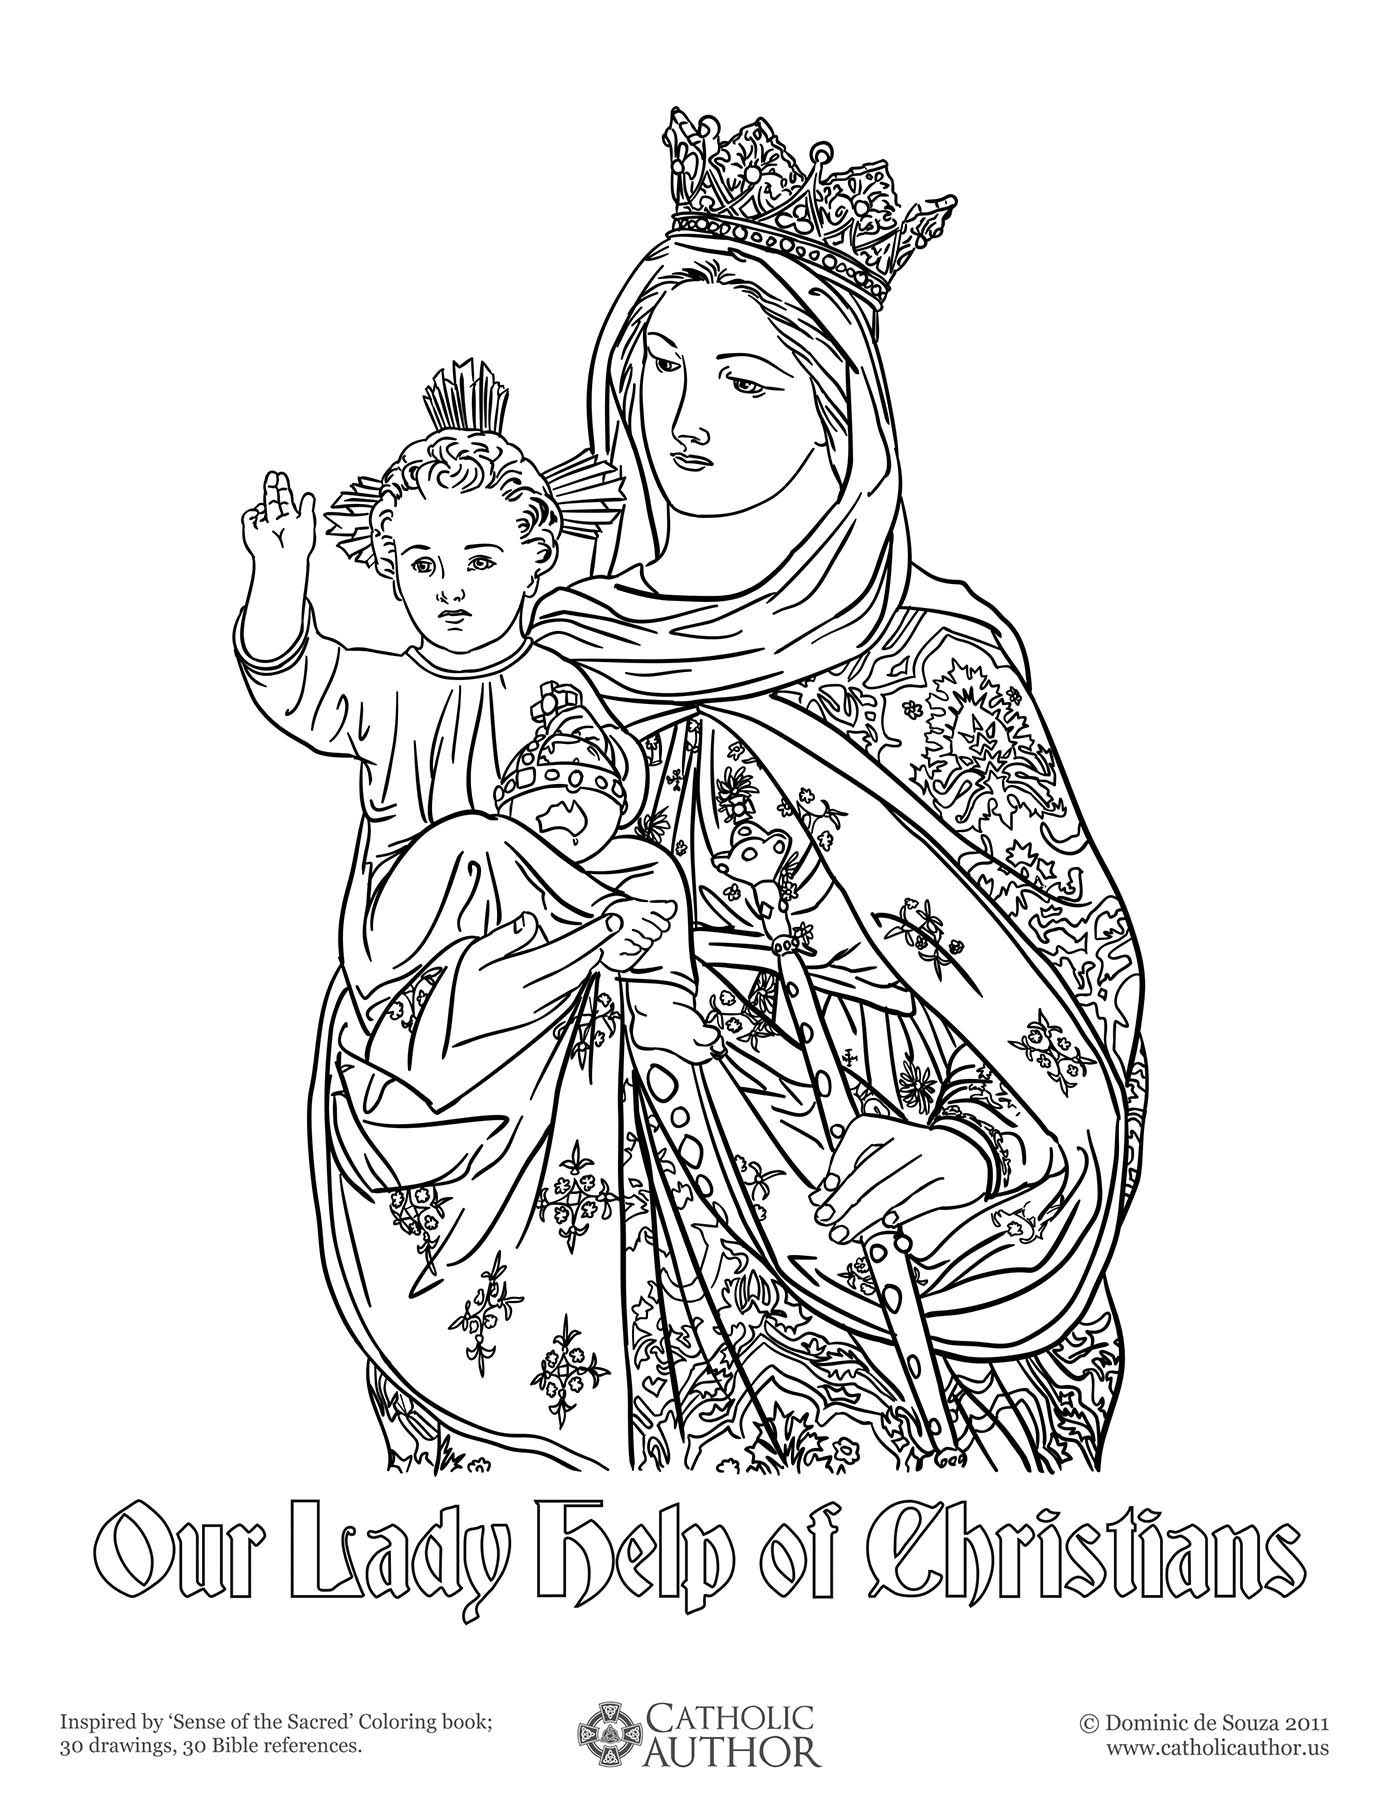 12 Free Hand Drawn Catholic Coloring Pictures Catholicviral Catholic Coloring Catholic Coloring Books Free Hand Drawing